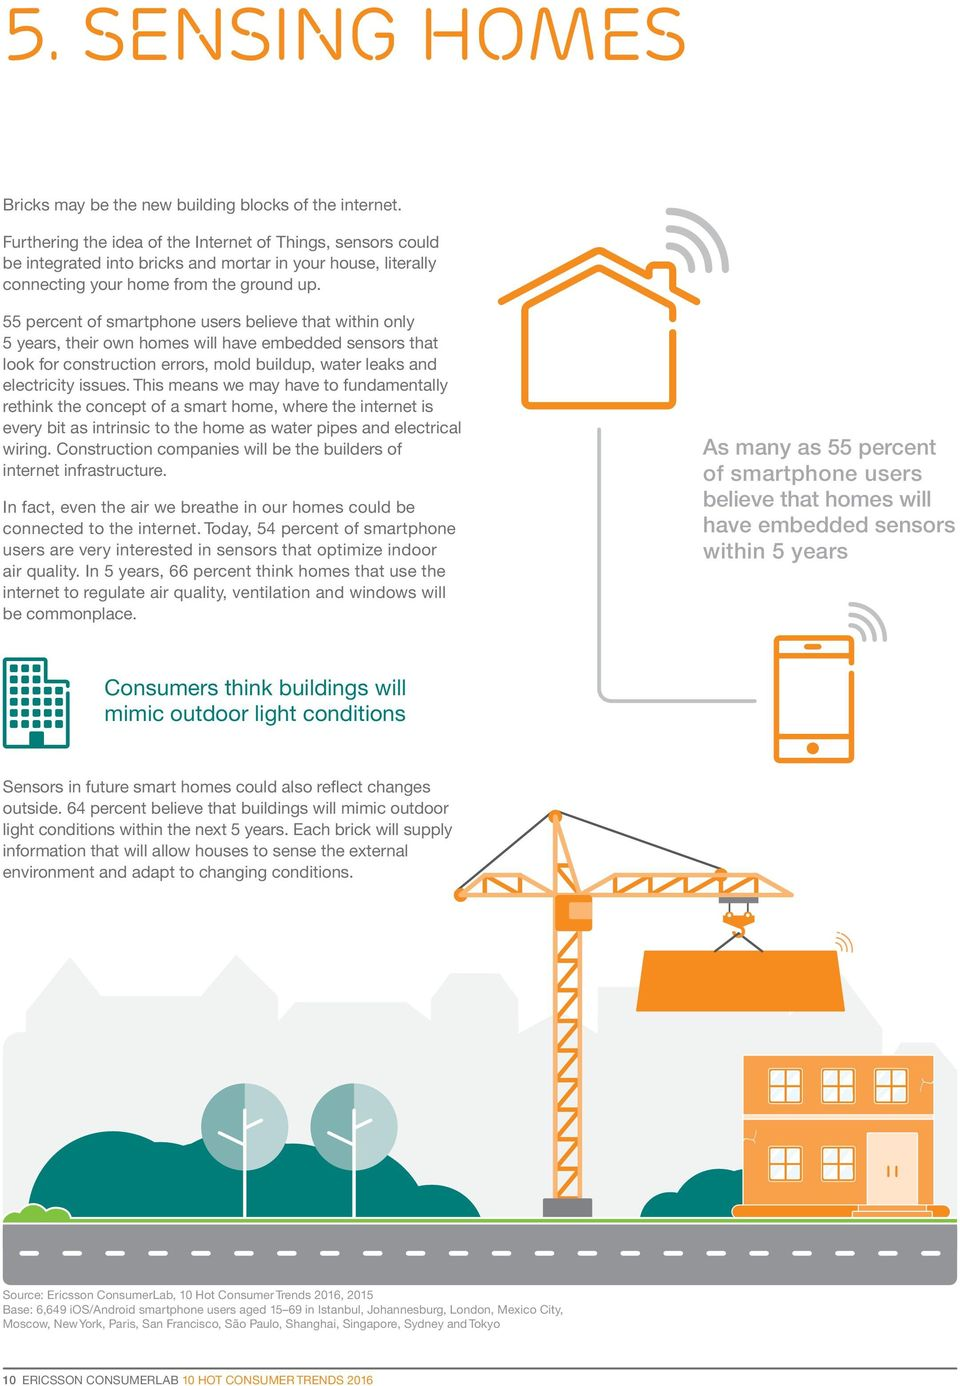 55 percent of smartphone users believe that within only 5 years, their own homes will have embedded sensors that look for construction errors, mold buildup, water leaks and electricity issues.